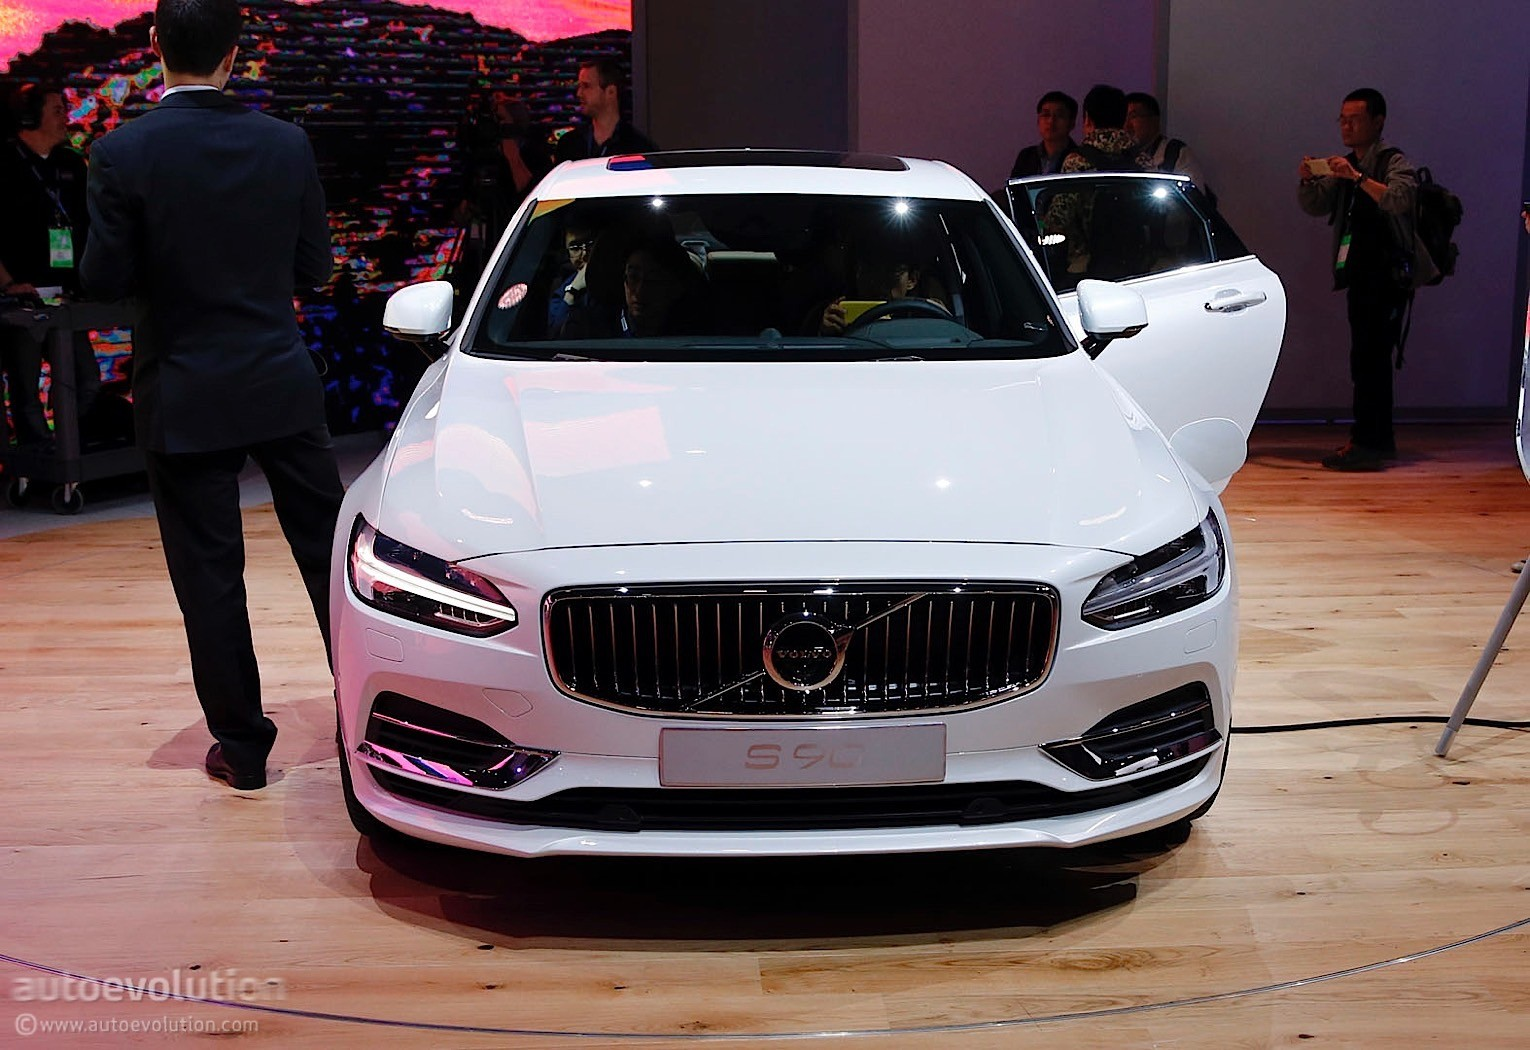 Volvo Launches Its S90 Flagship Sedan at 2016 Detroit Auto Show - autoevolution